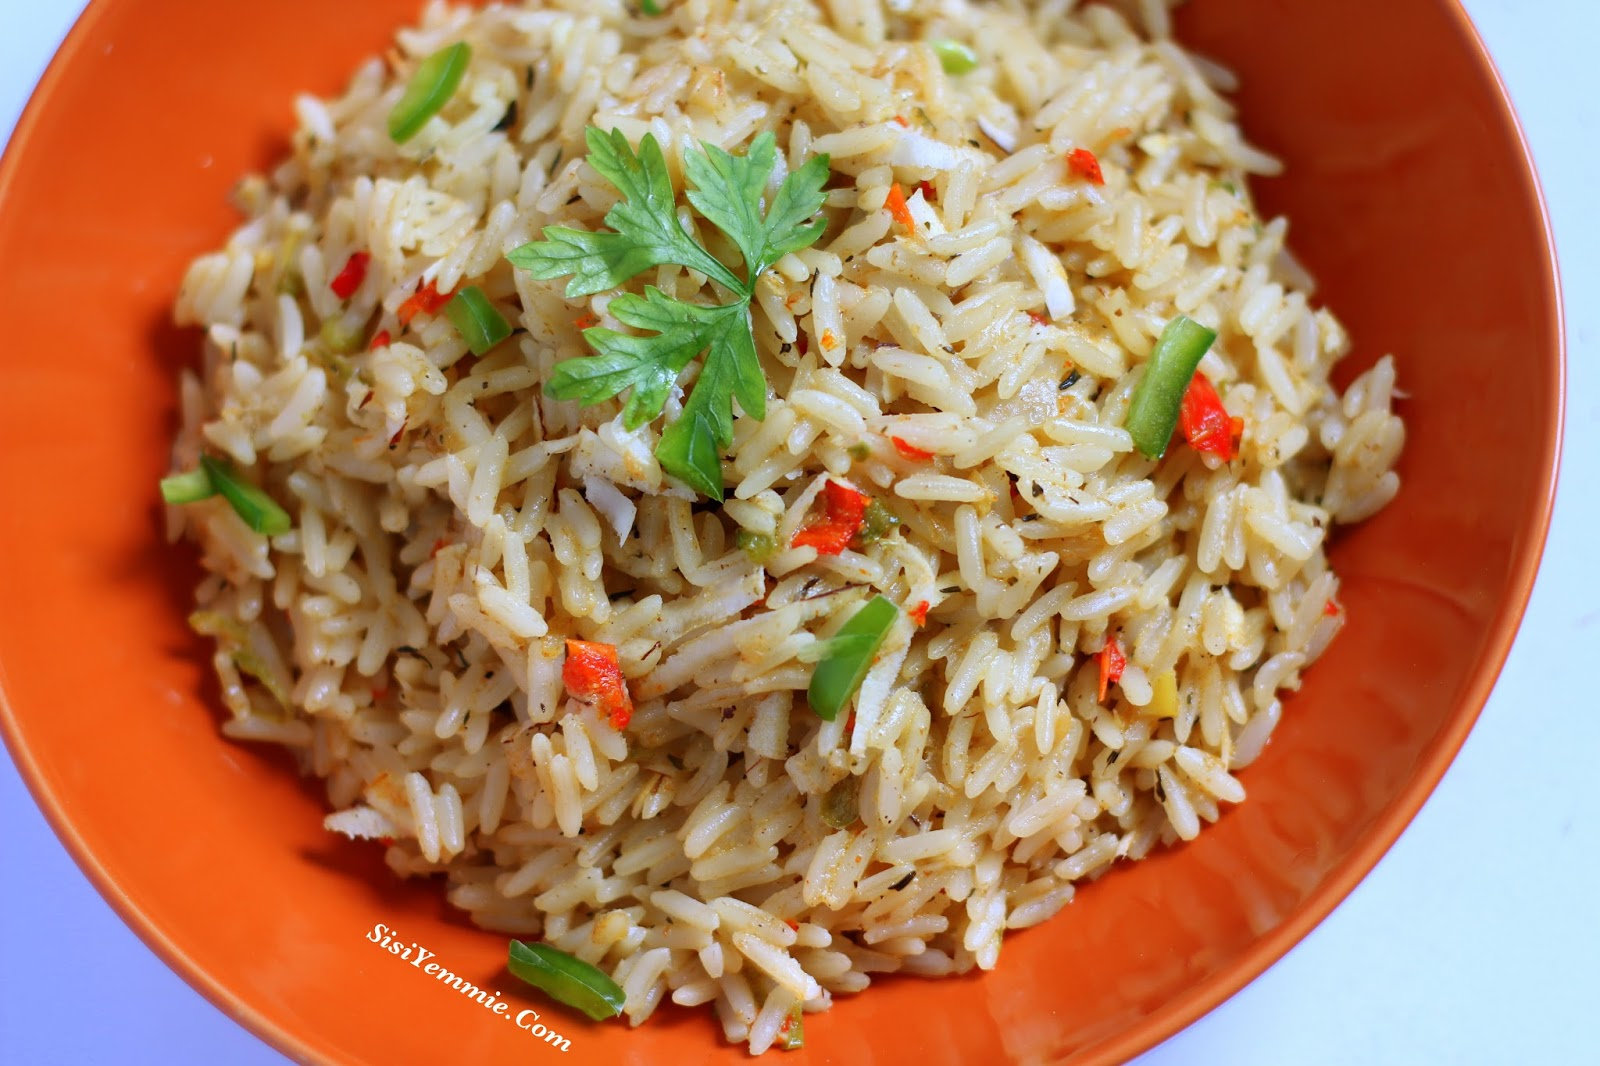 Nigerian coconut rice recipe sisiyemmie nigerian food lifestyle nigerian coconut rice recipe forumfinder